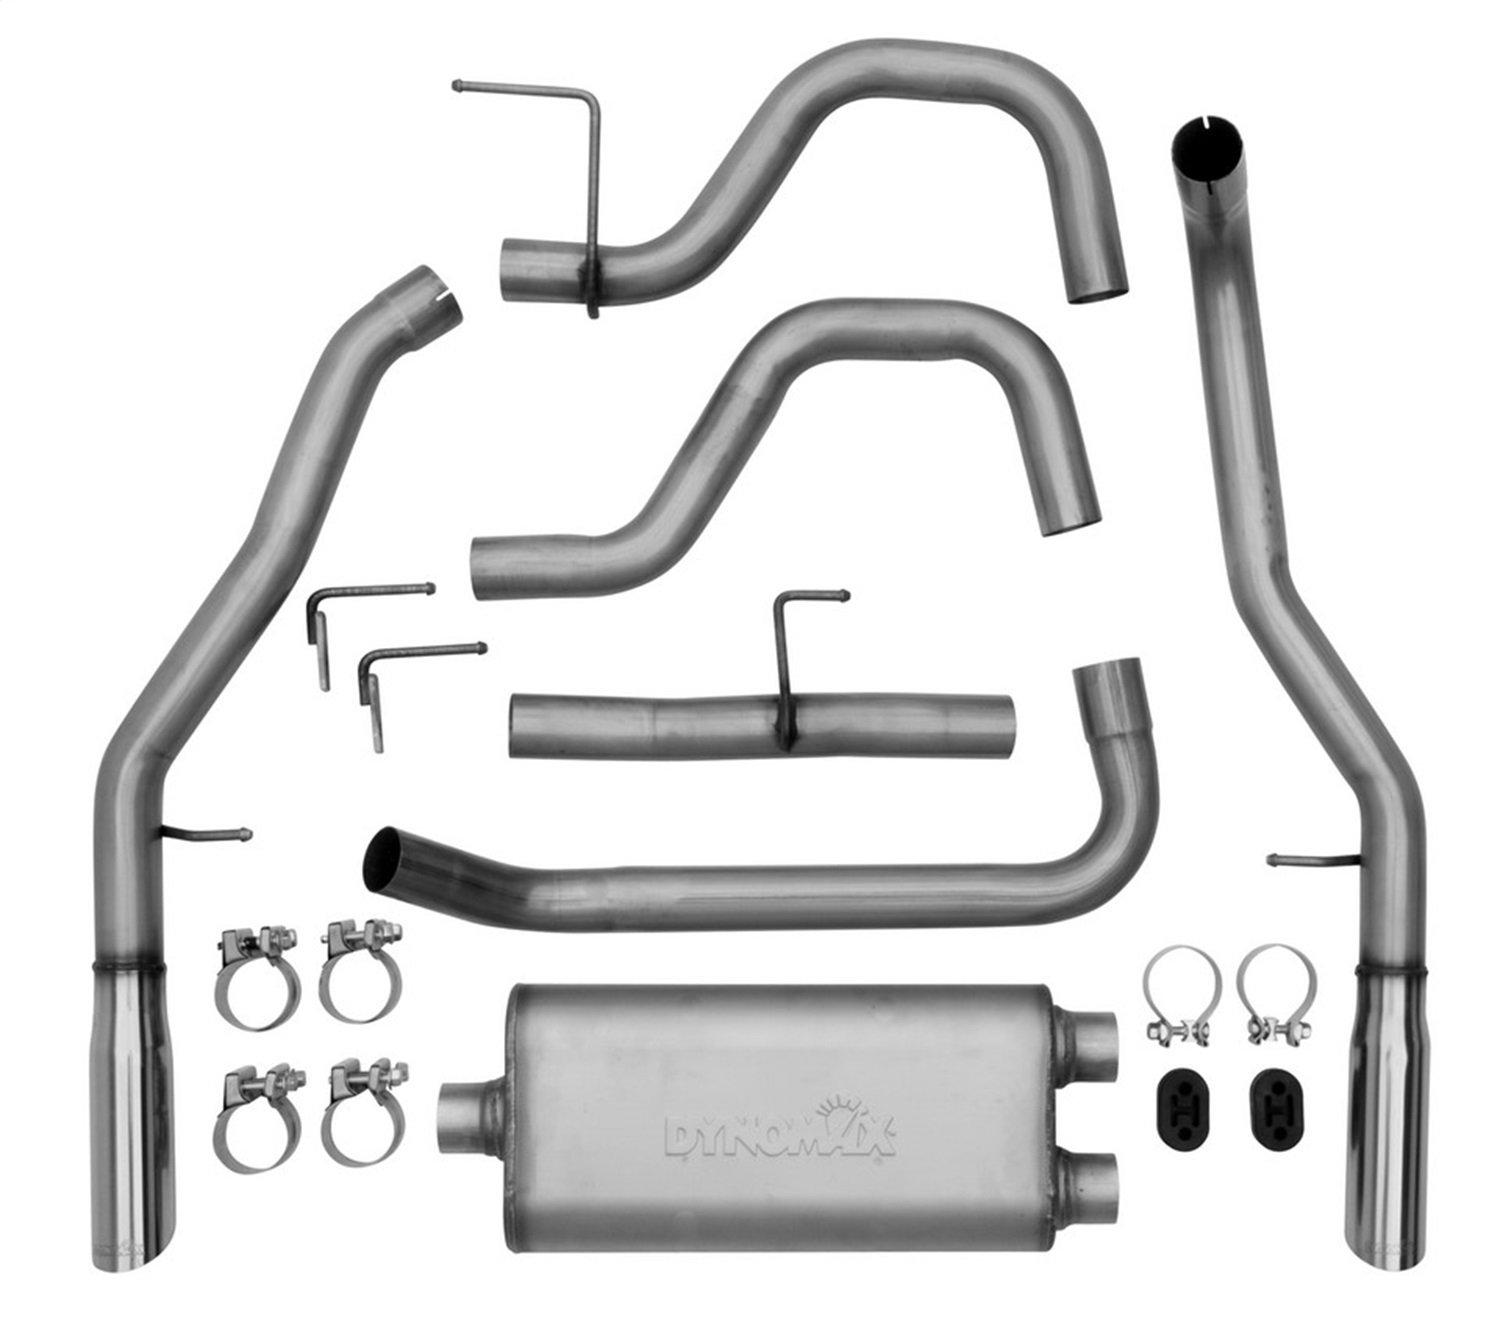 Dynomax 39450 Stainless Steel Exhaust System